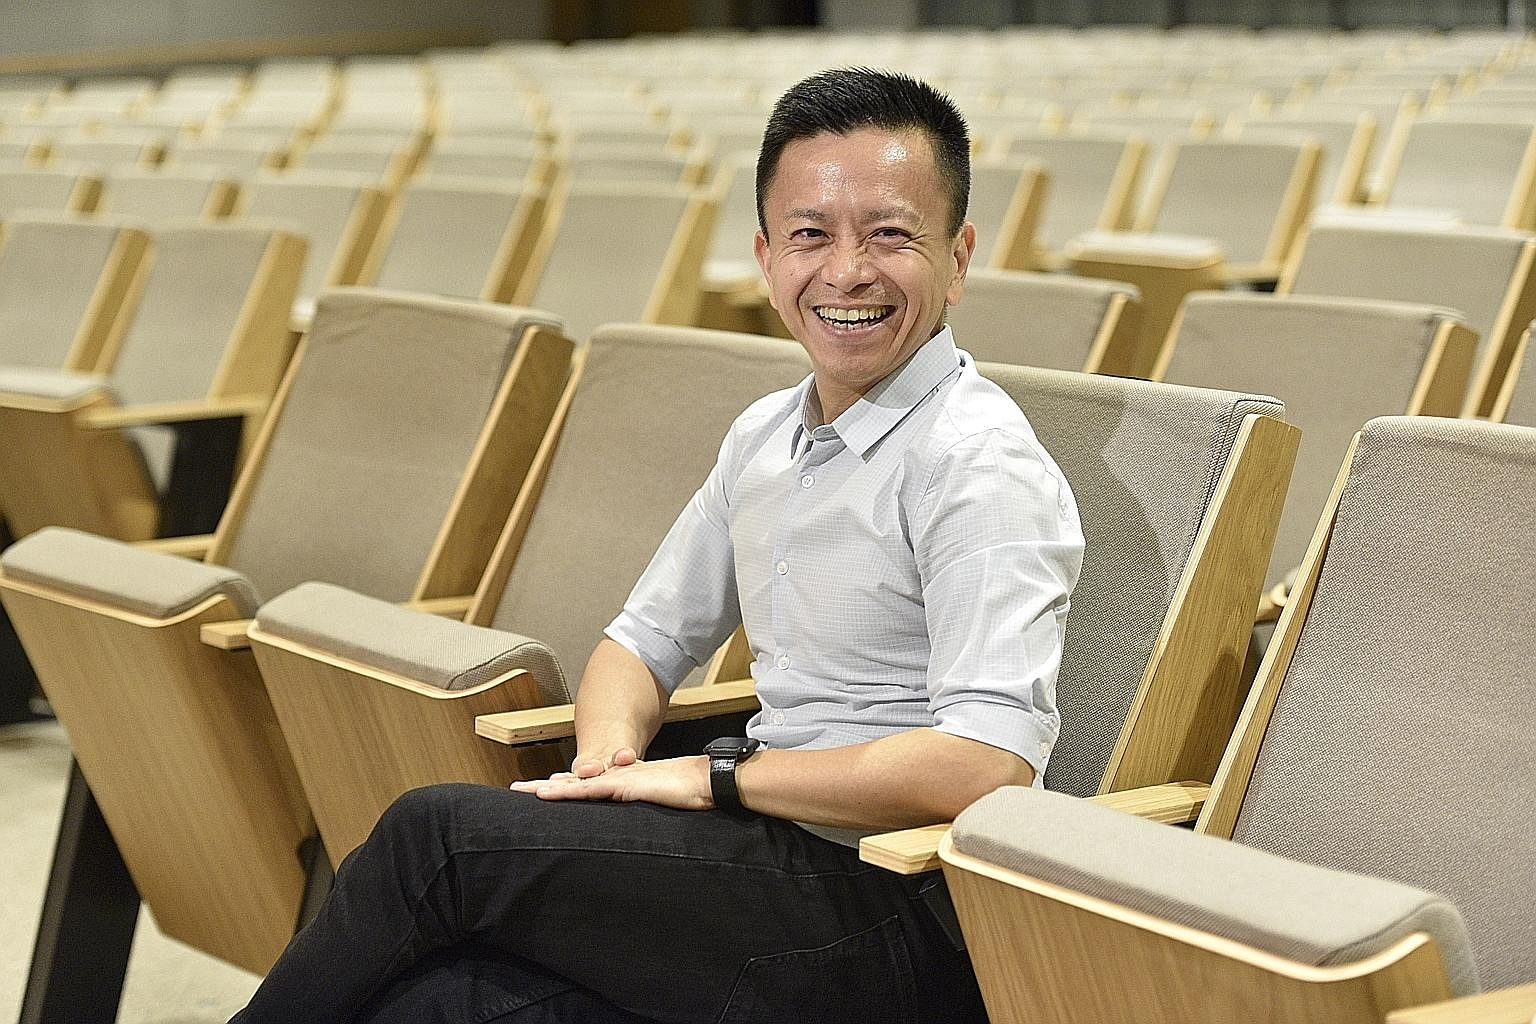 Senior pastor Wilson Teo, who has recovered, says the cluster of infections at his church has brought his team closer but admits they were not prepared for the crisis when it happened.